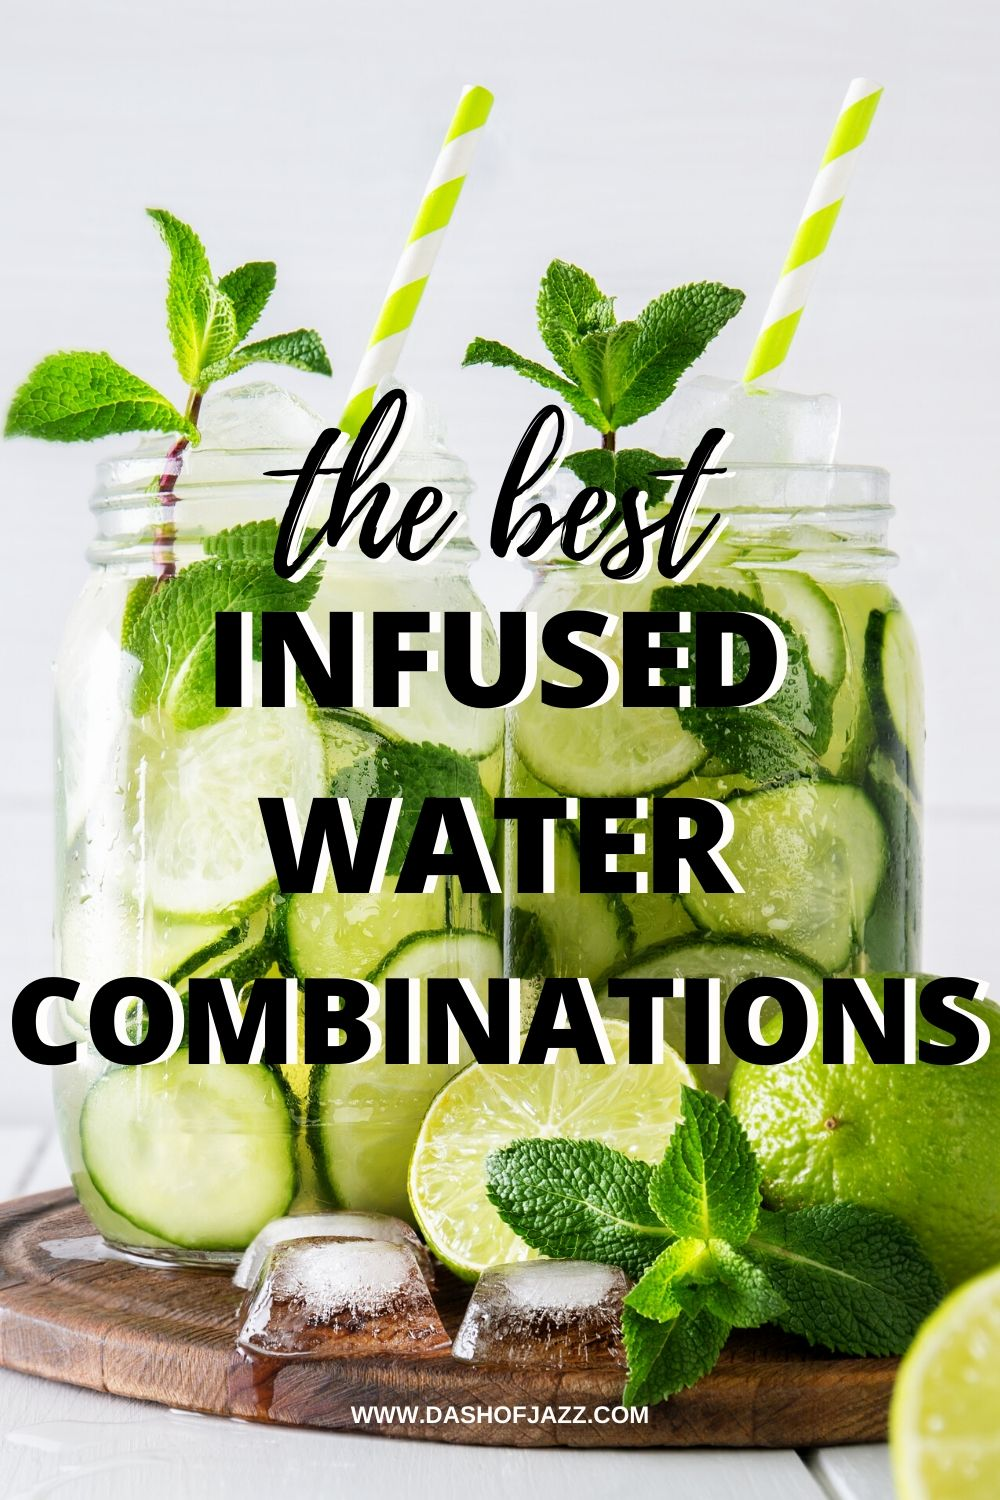 water infused with mint, lemons, and limes